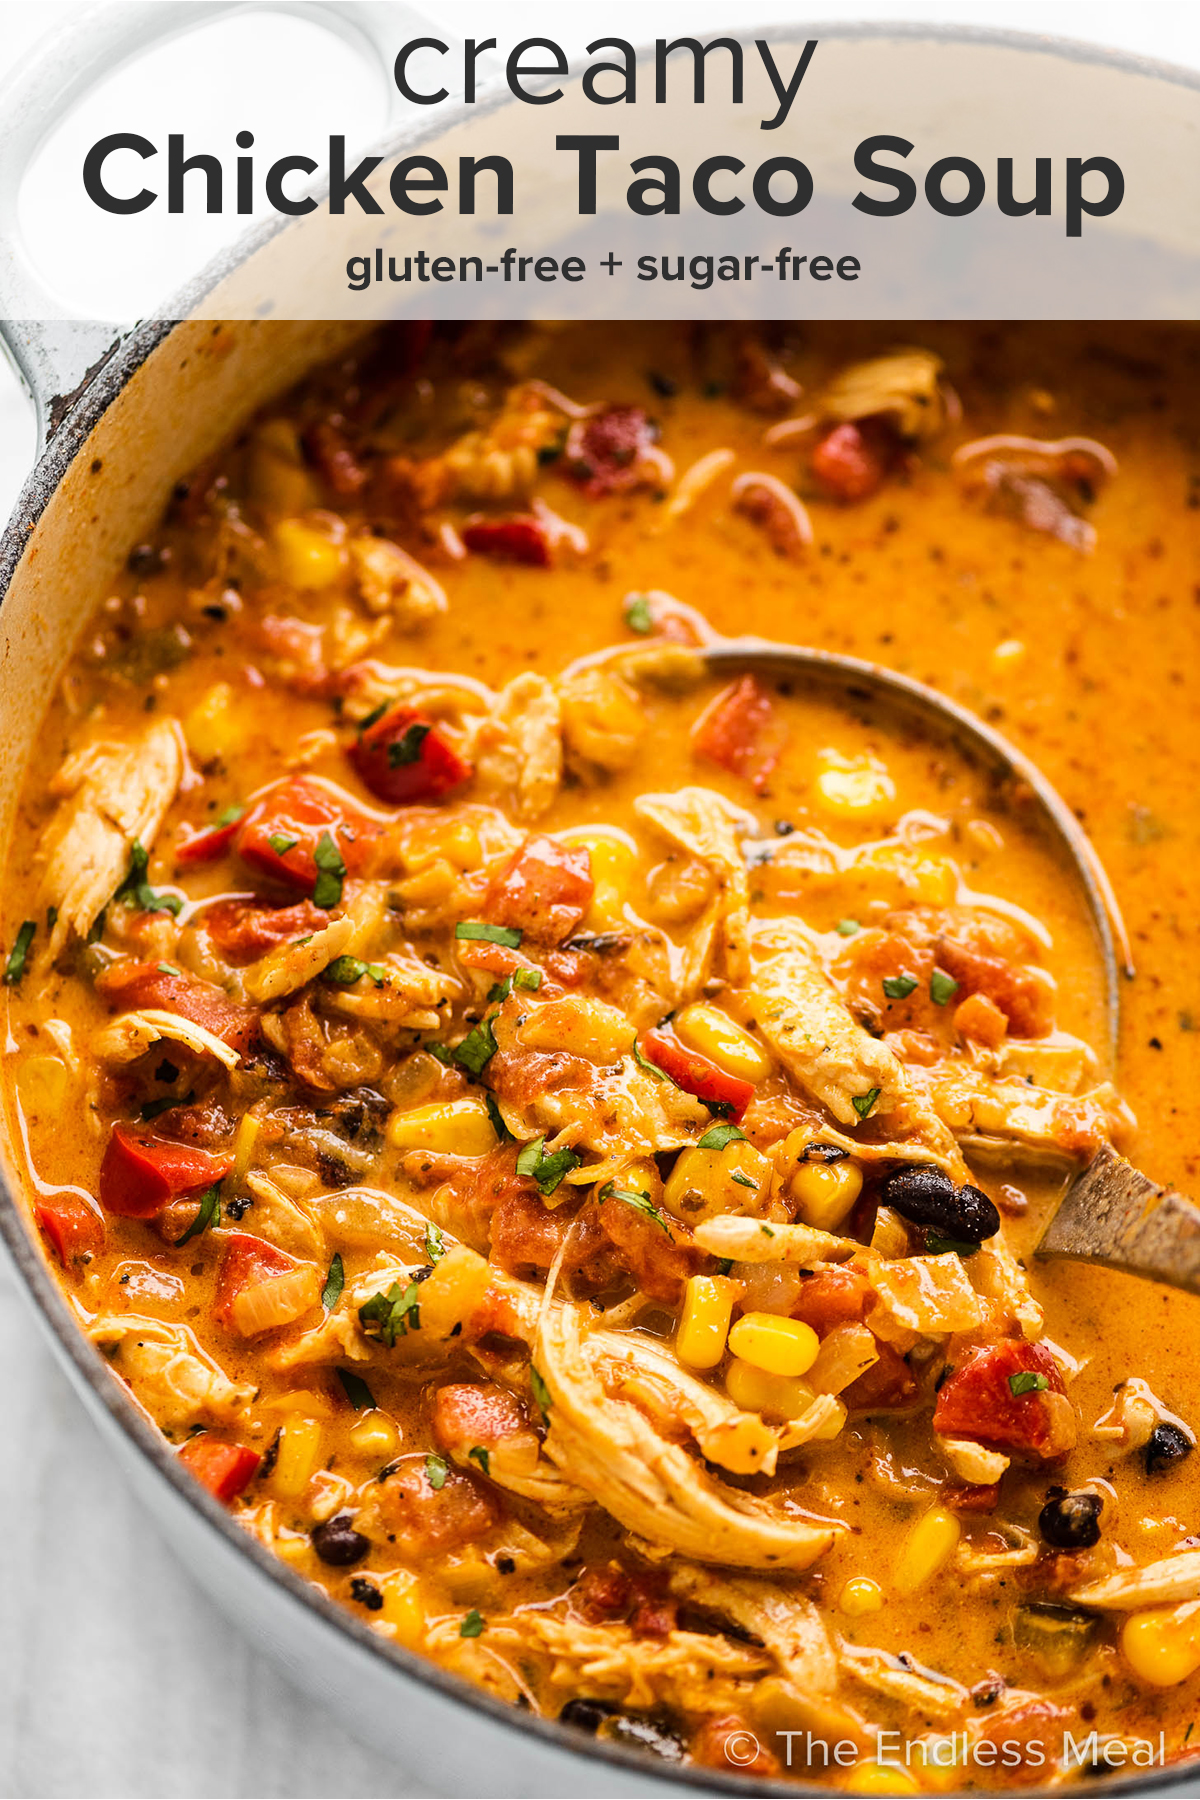 A pot of creamy chicken taco soup with a ladle scooping some out and the recipe title on top of the picture.